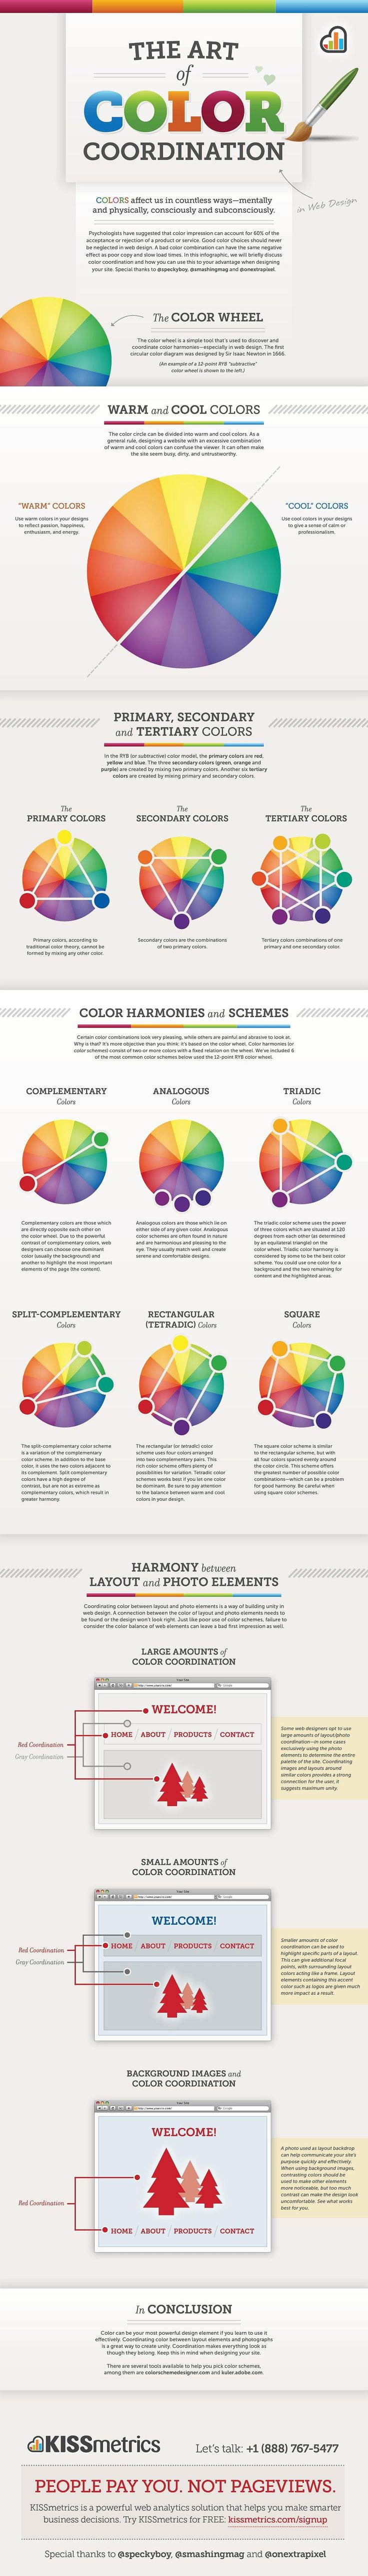 Color circle art publishing - Follow This Link To See Different Colour Schemes Created Using A Traditional Colour Wheel